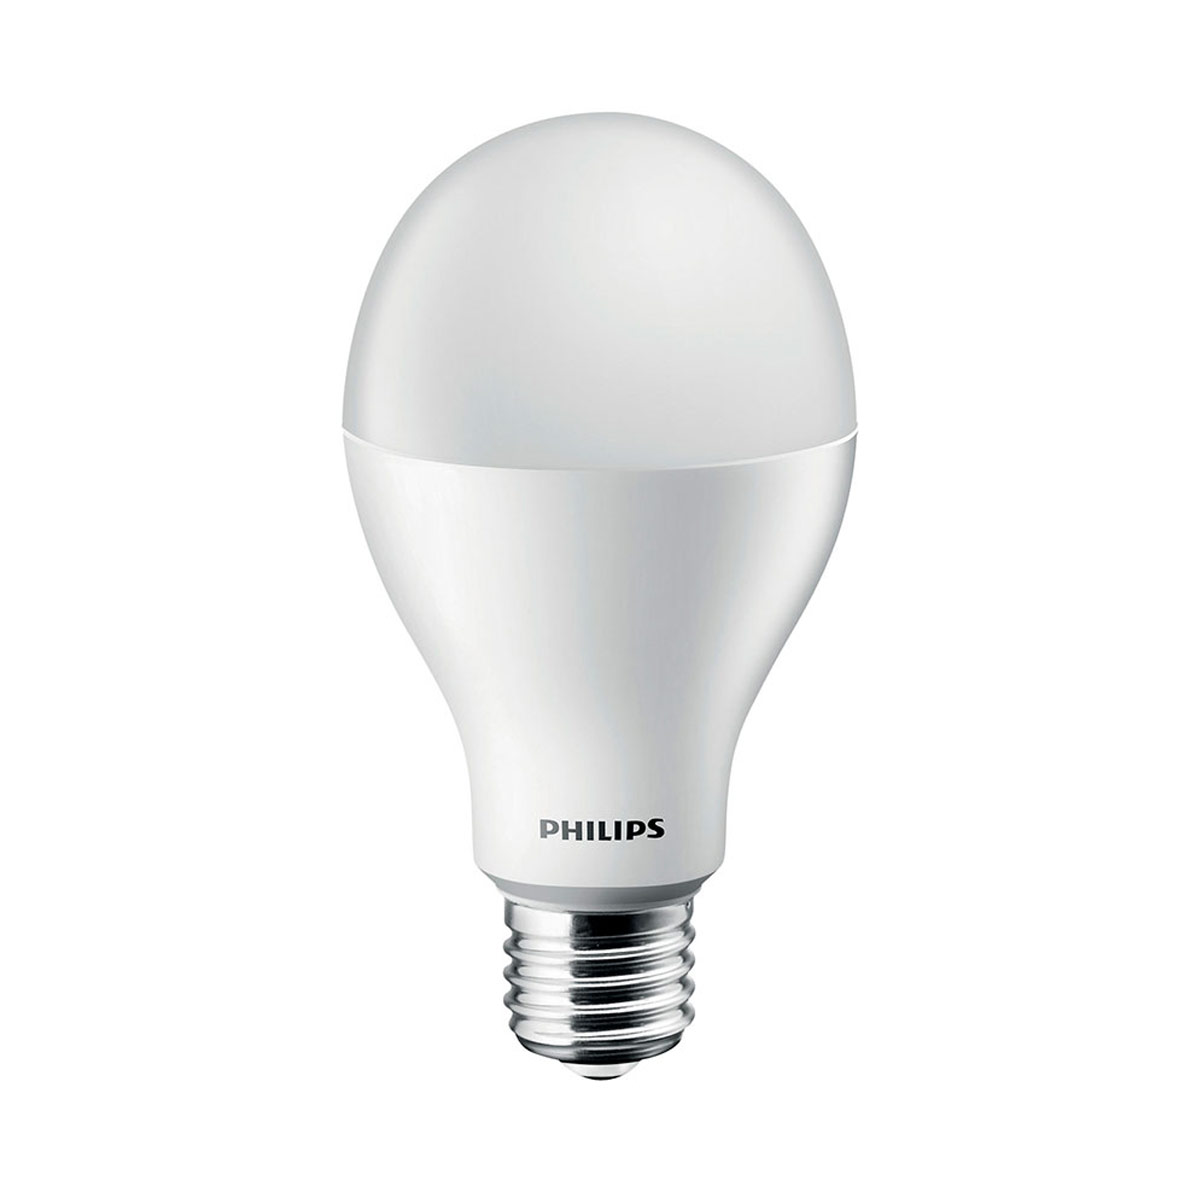 Lâmpada Philips Led Bulbo 13,5w 3000k Bivolt